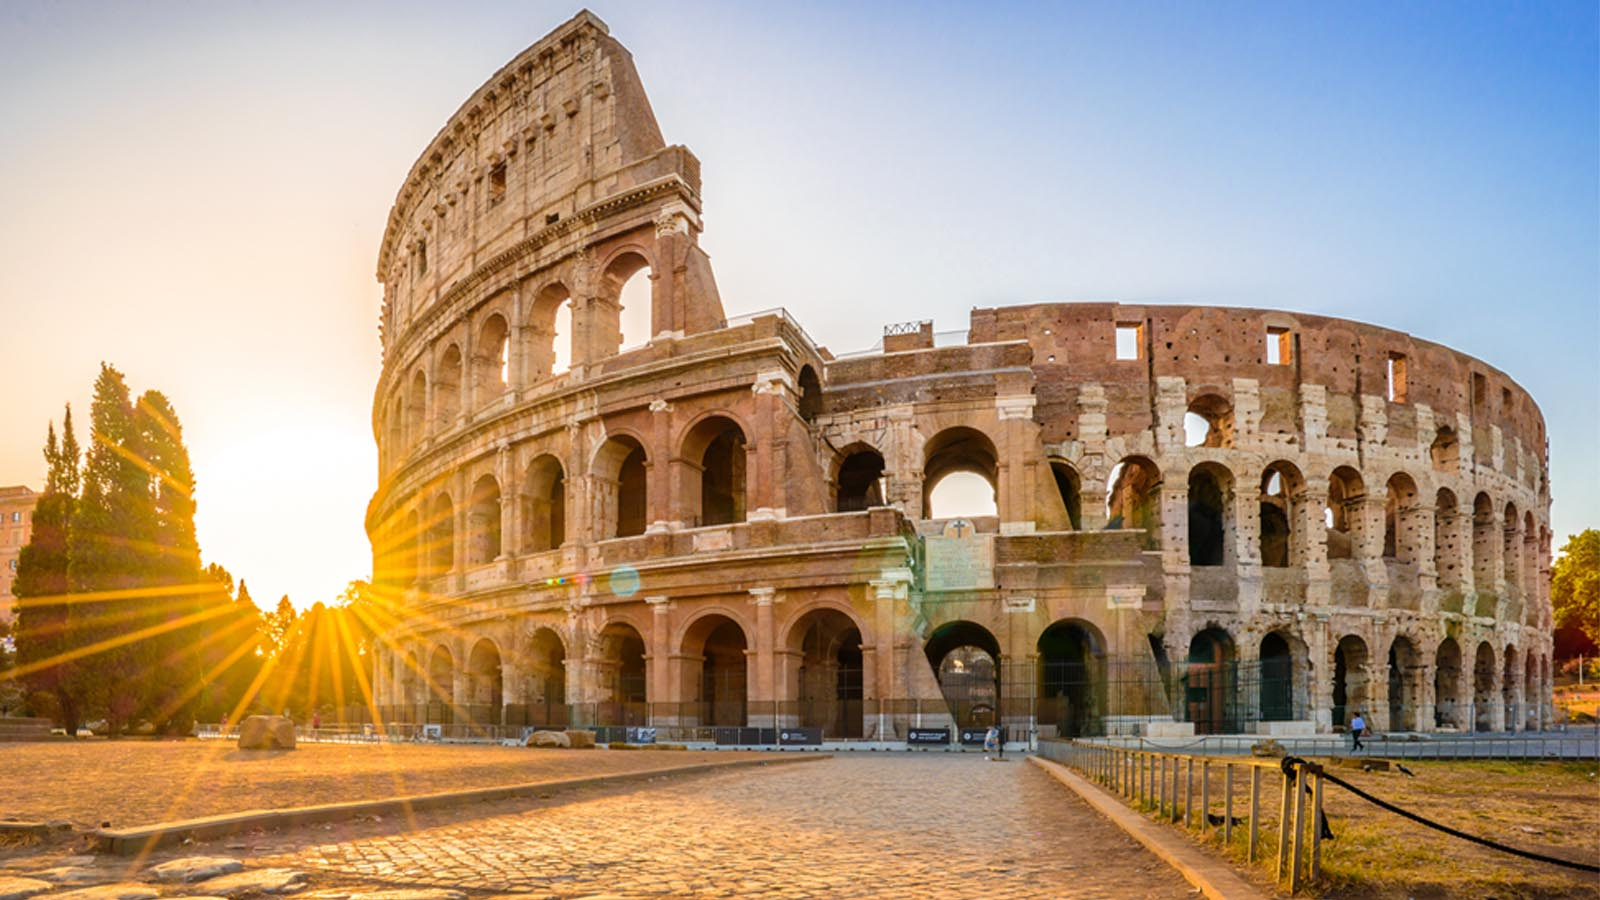 Rome Colloseum at sunset